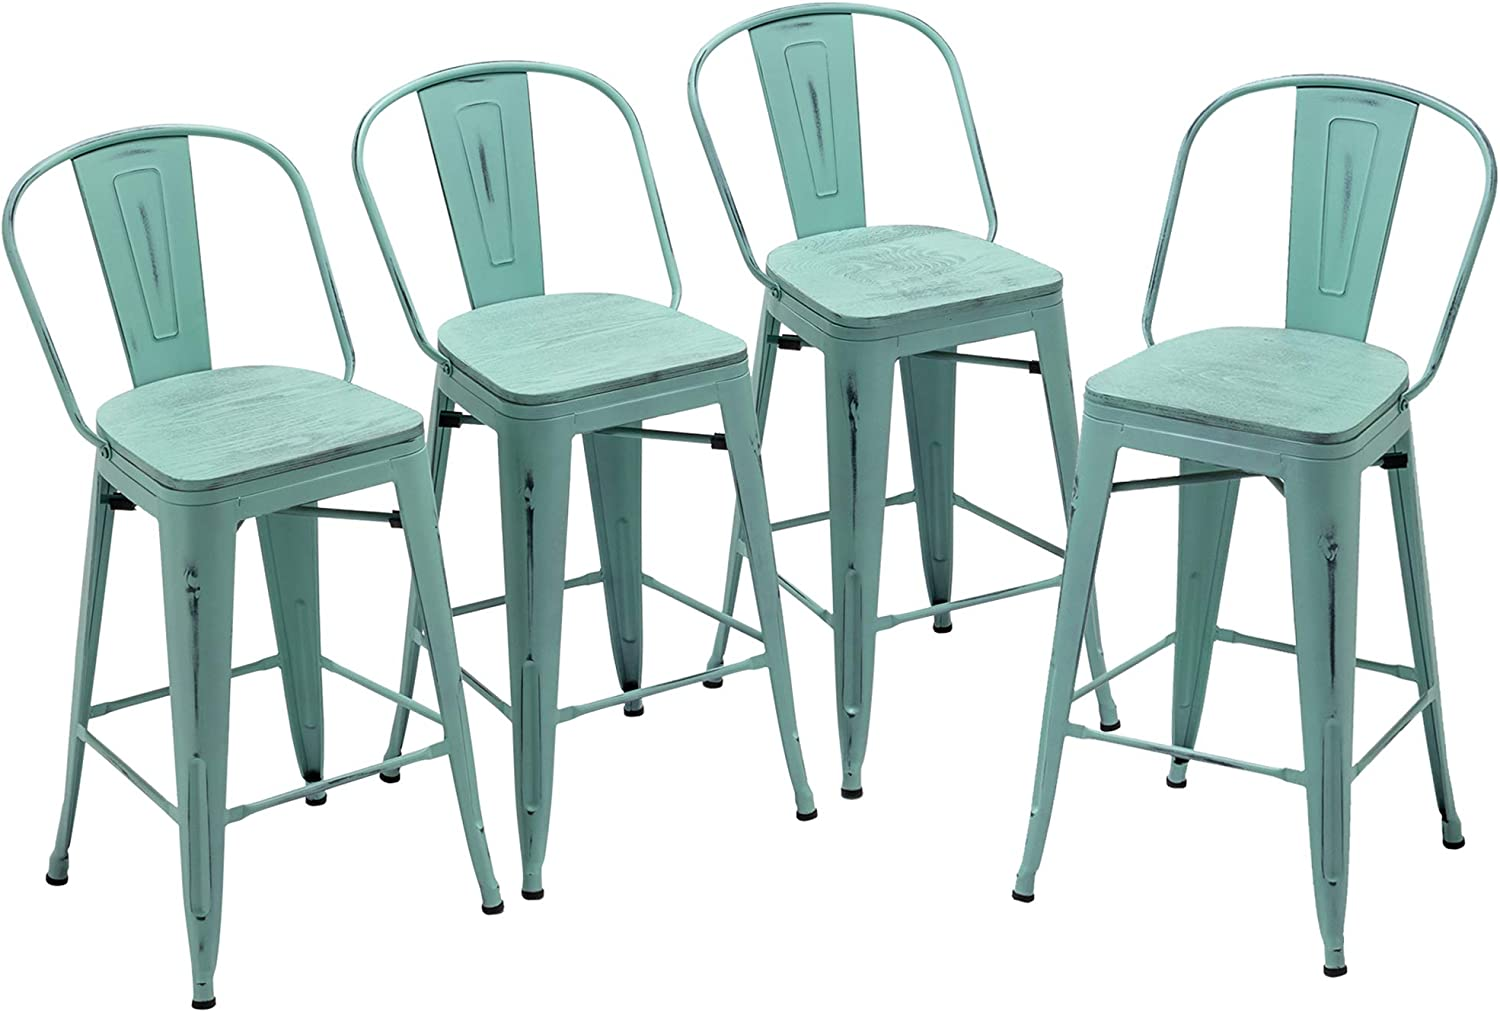 Yongqiang Metal Bar Stools Set of 4 OFFicial mail order B Chairs High Industrial Special price for a limited time